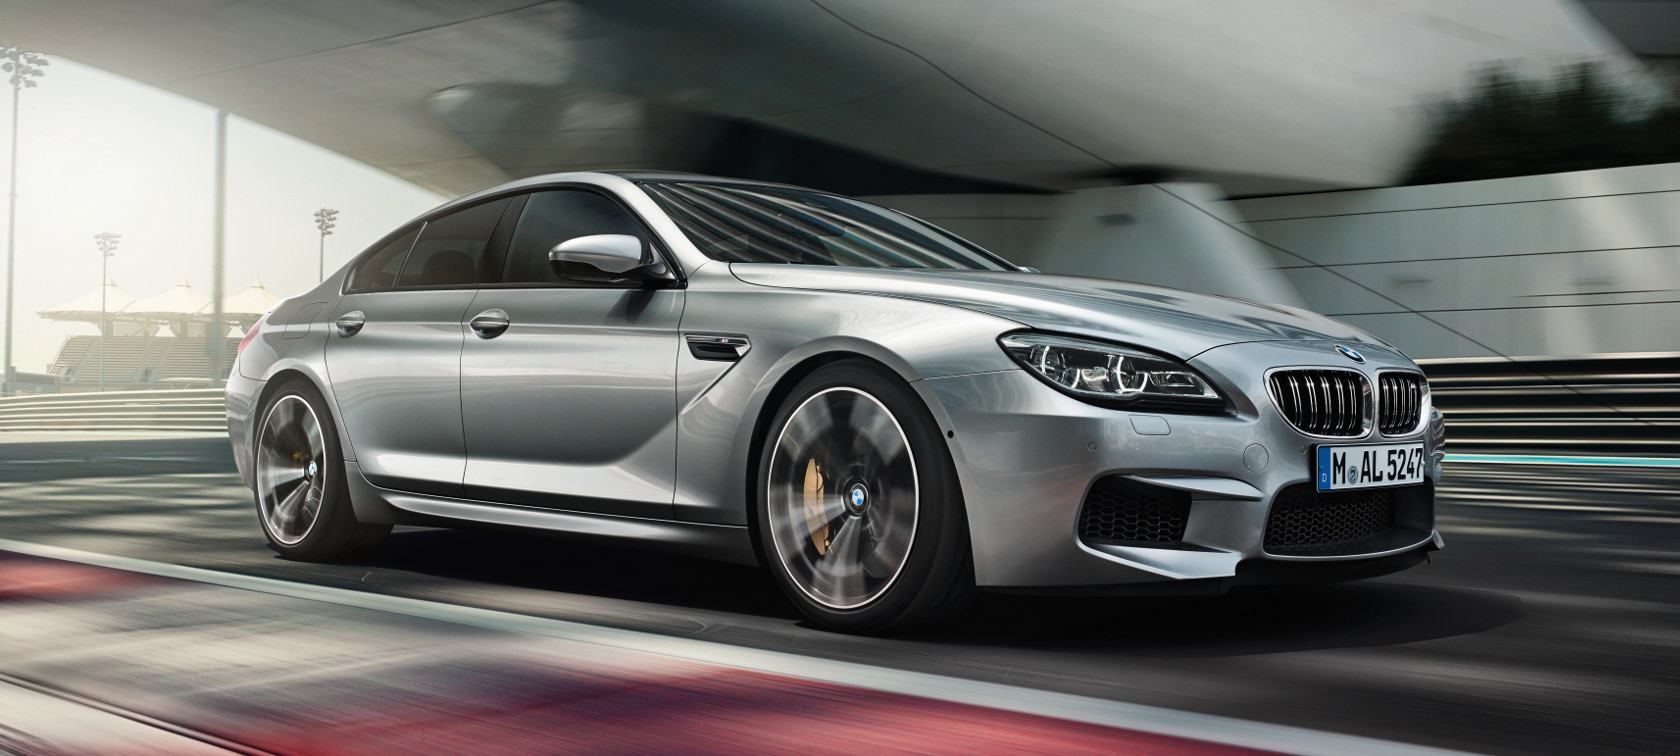 Driving Dynamics & Efficiency in the BMW M6 Gran Coupé